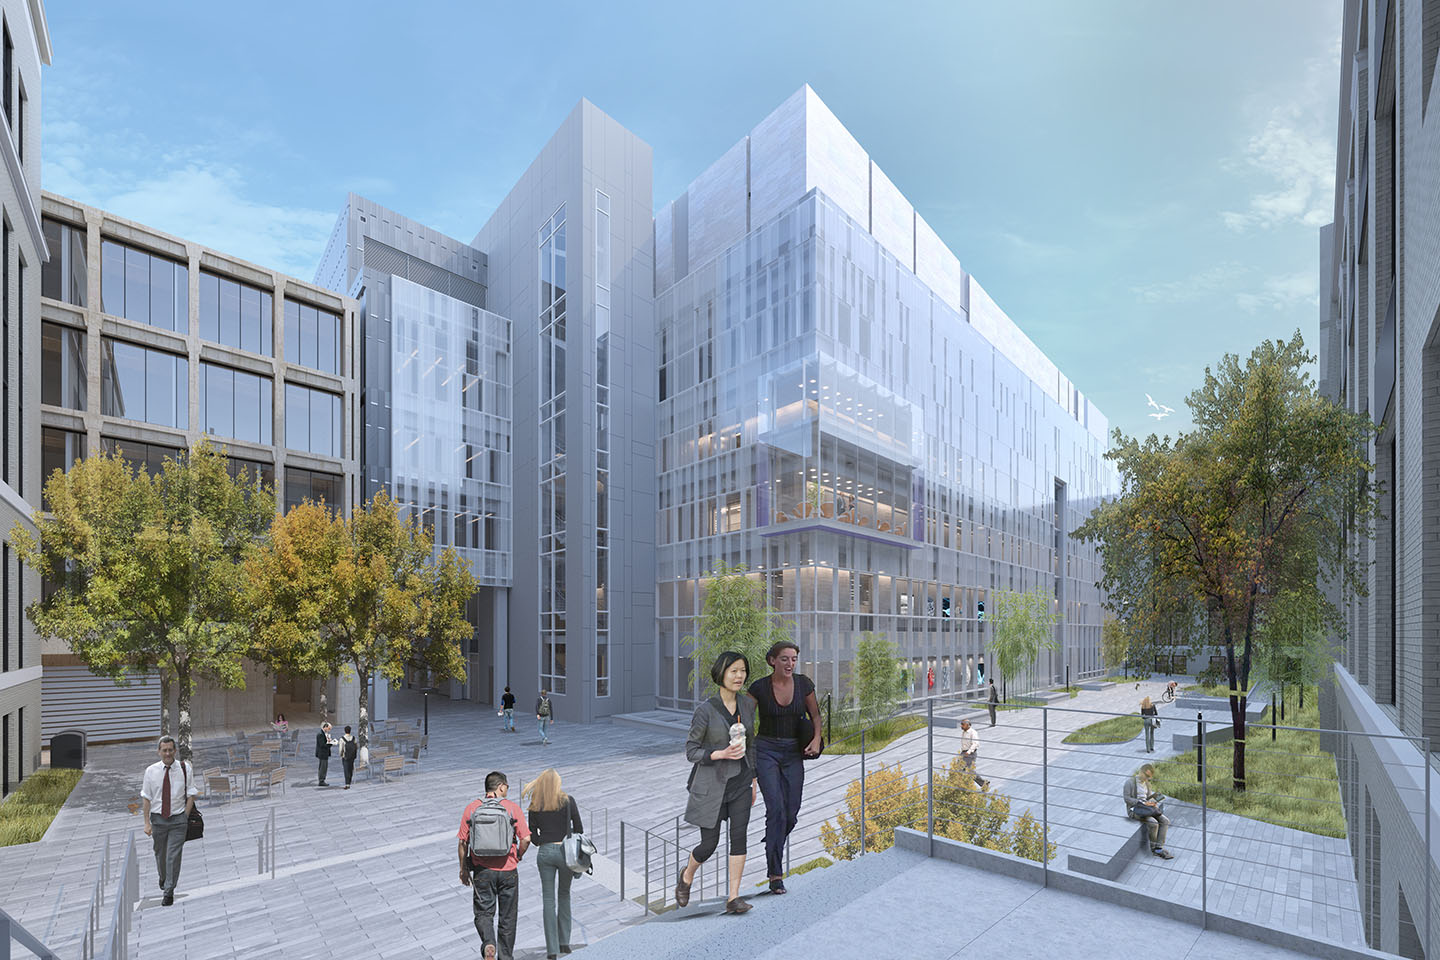 Mit nano kendall square cambridge boston real estate office development construction preservation project turner construction wilson architects architectural rendering